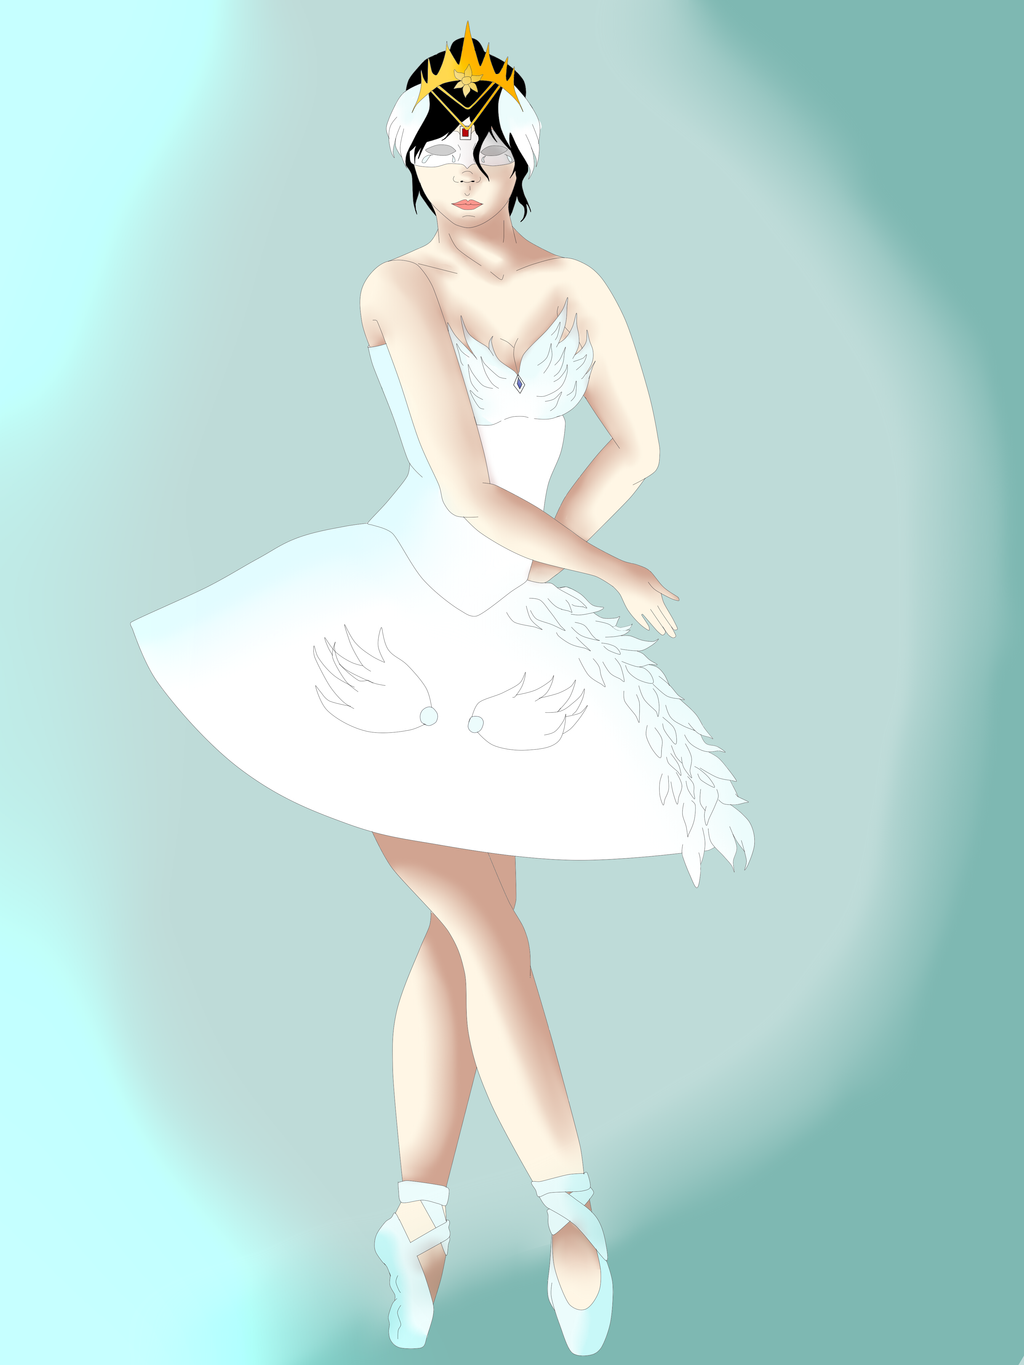 Giselle the ballerina by Zahyebah